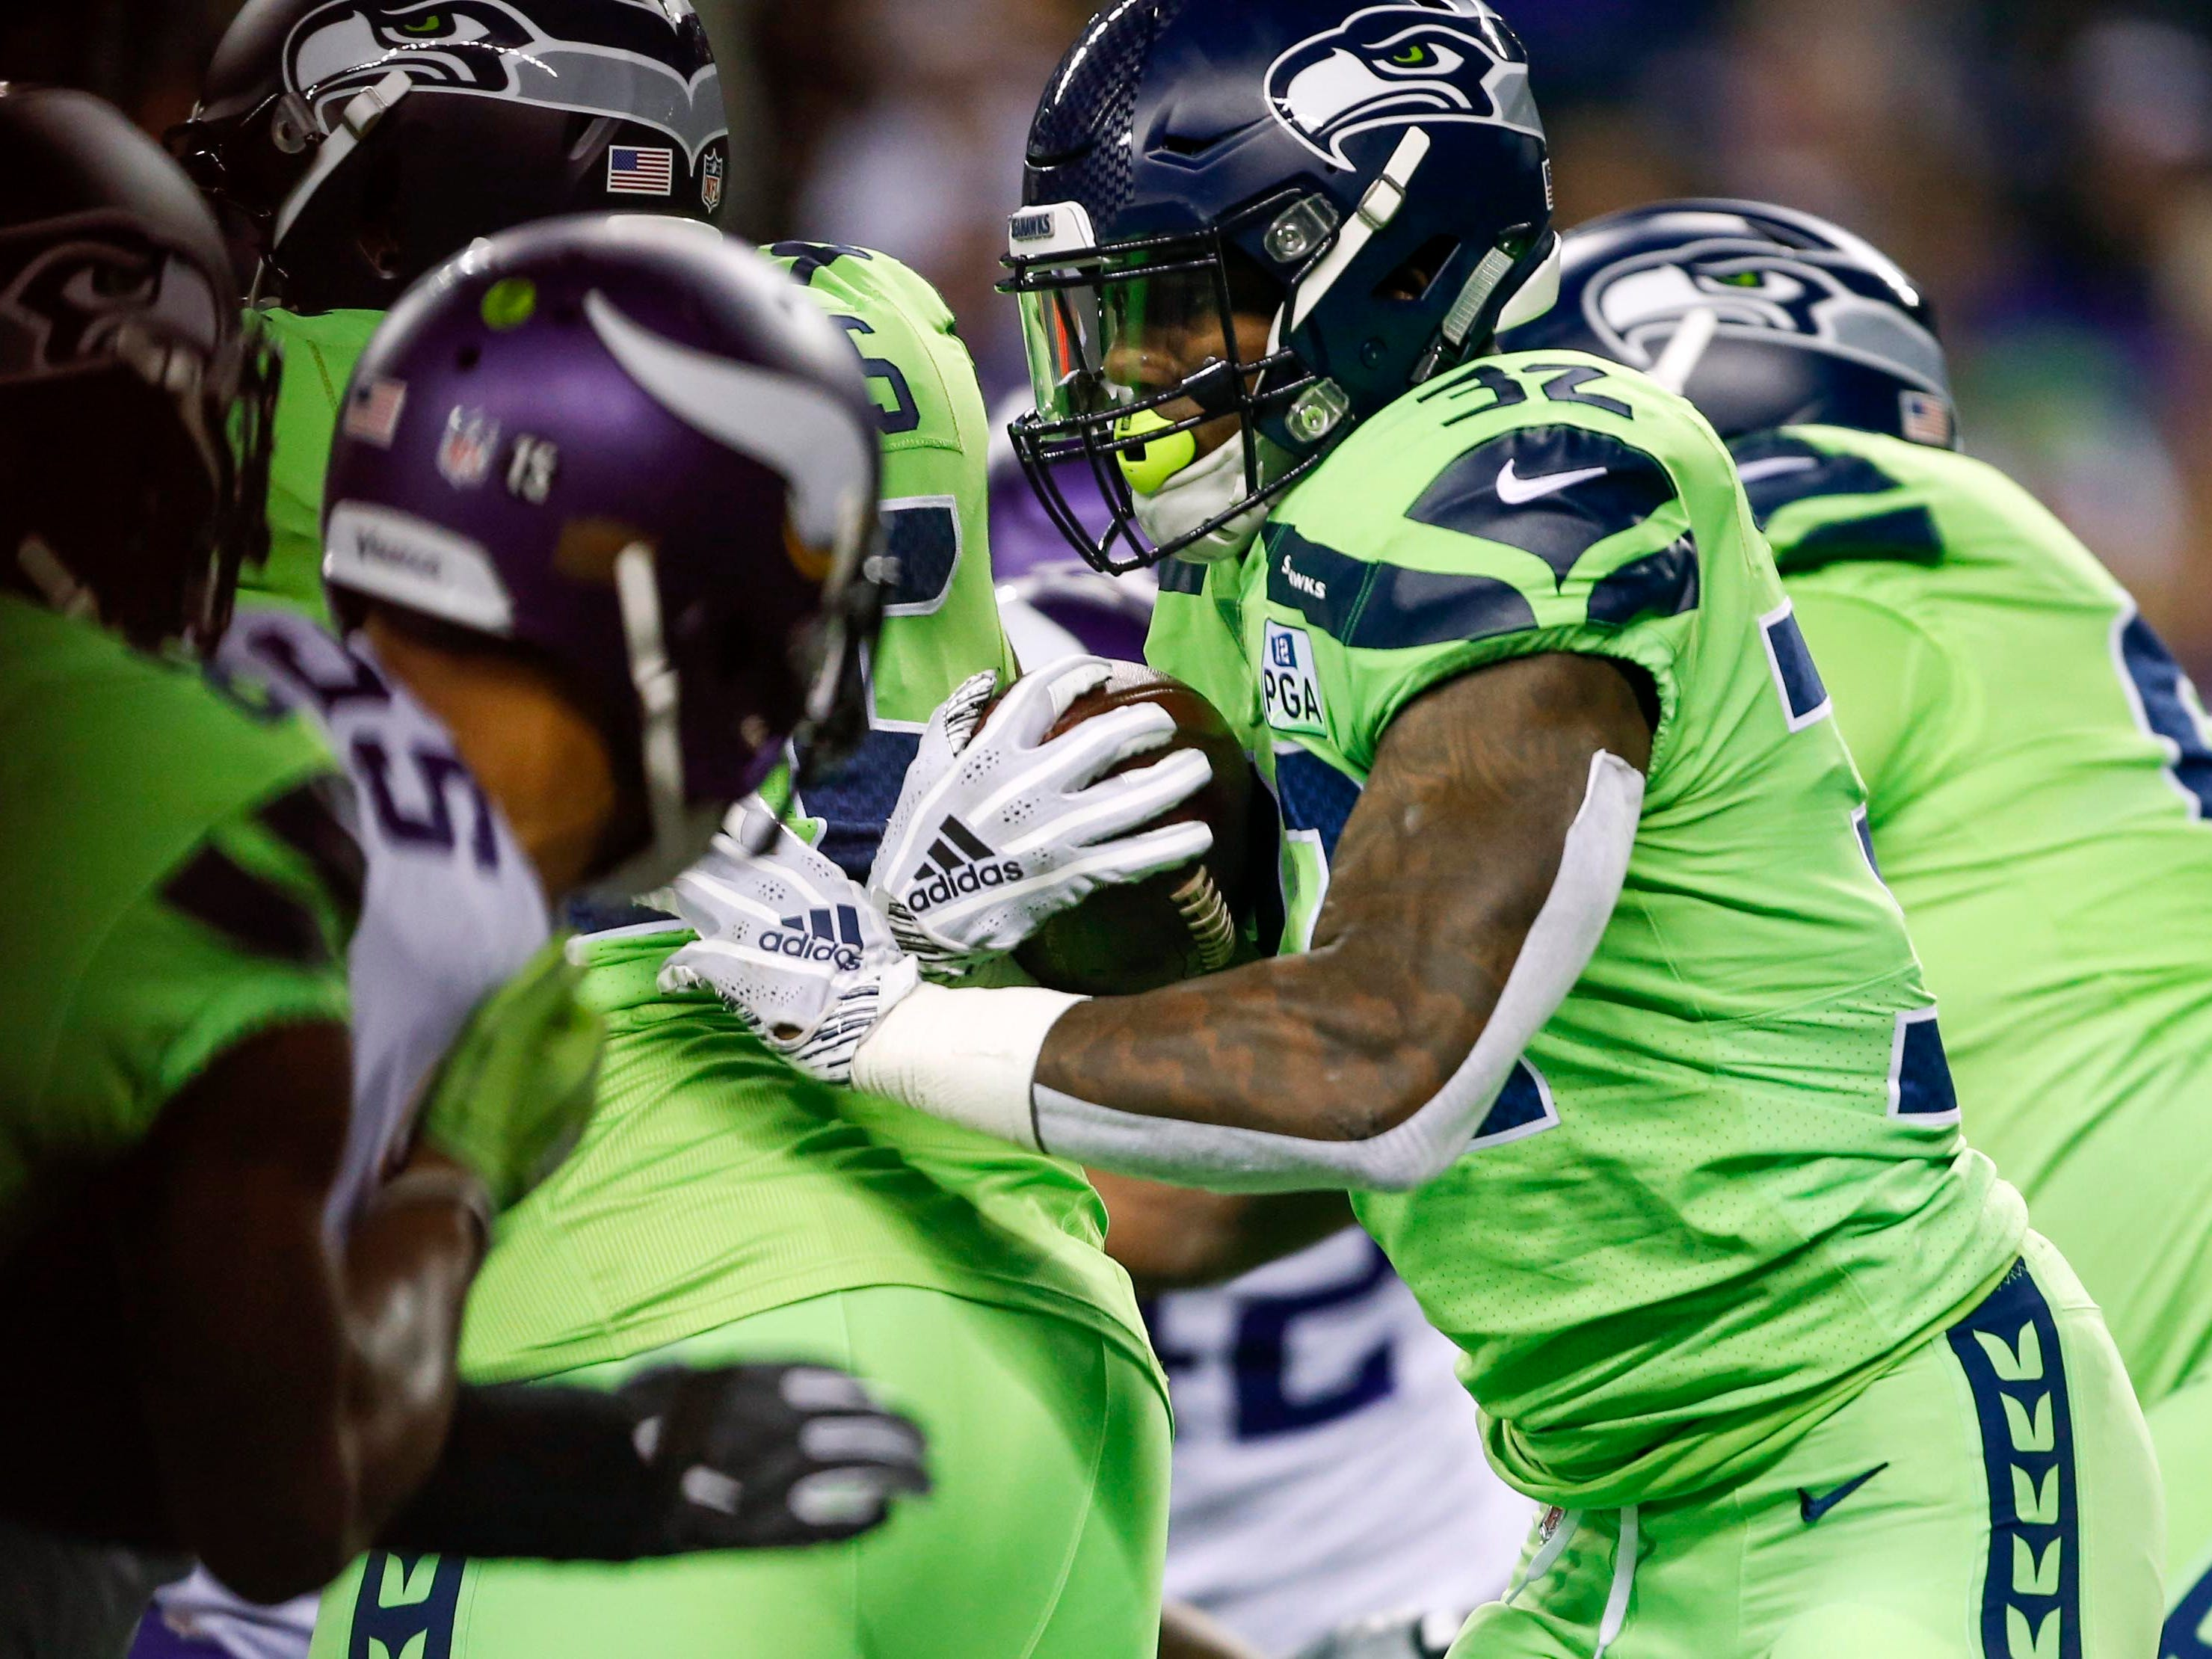 Seattle Seahawks running back Chris Carson (32) rushes against the Minnesota Vikings during the first quarter at CenturyLink Field.